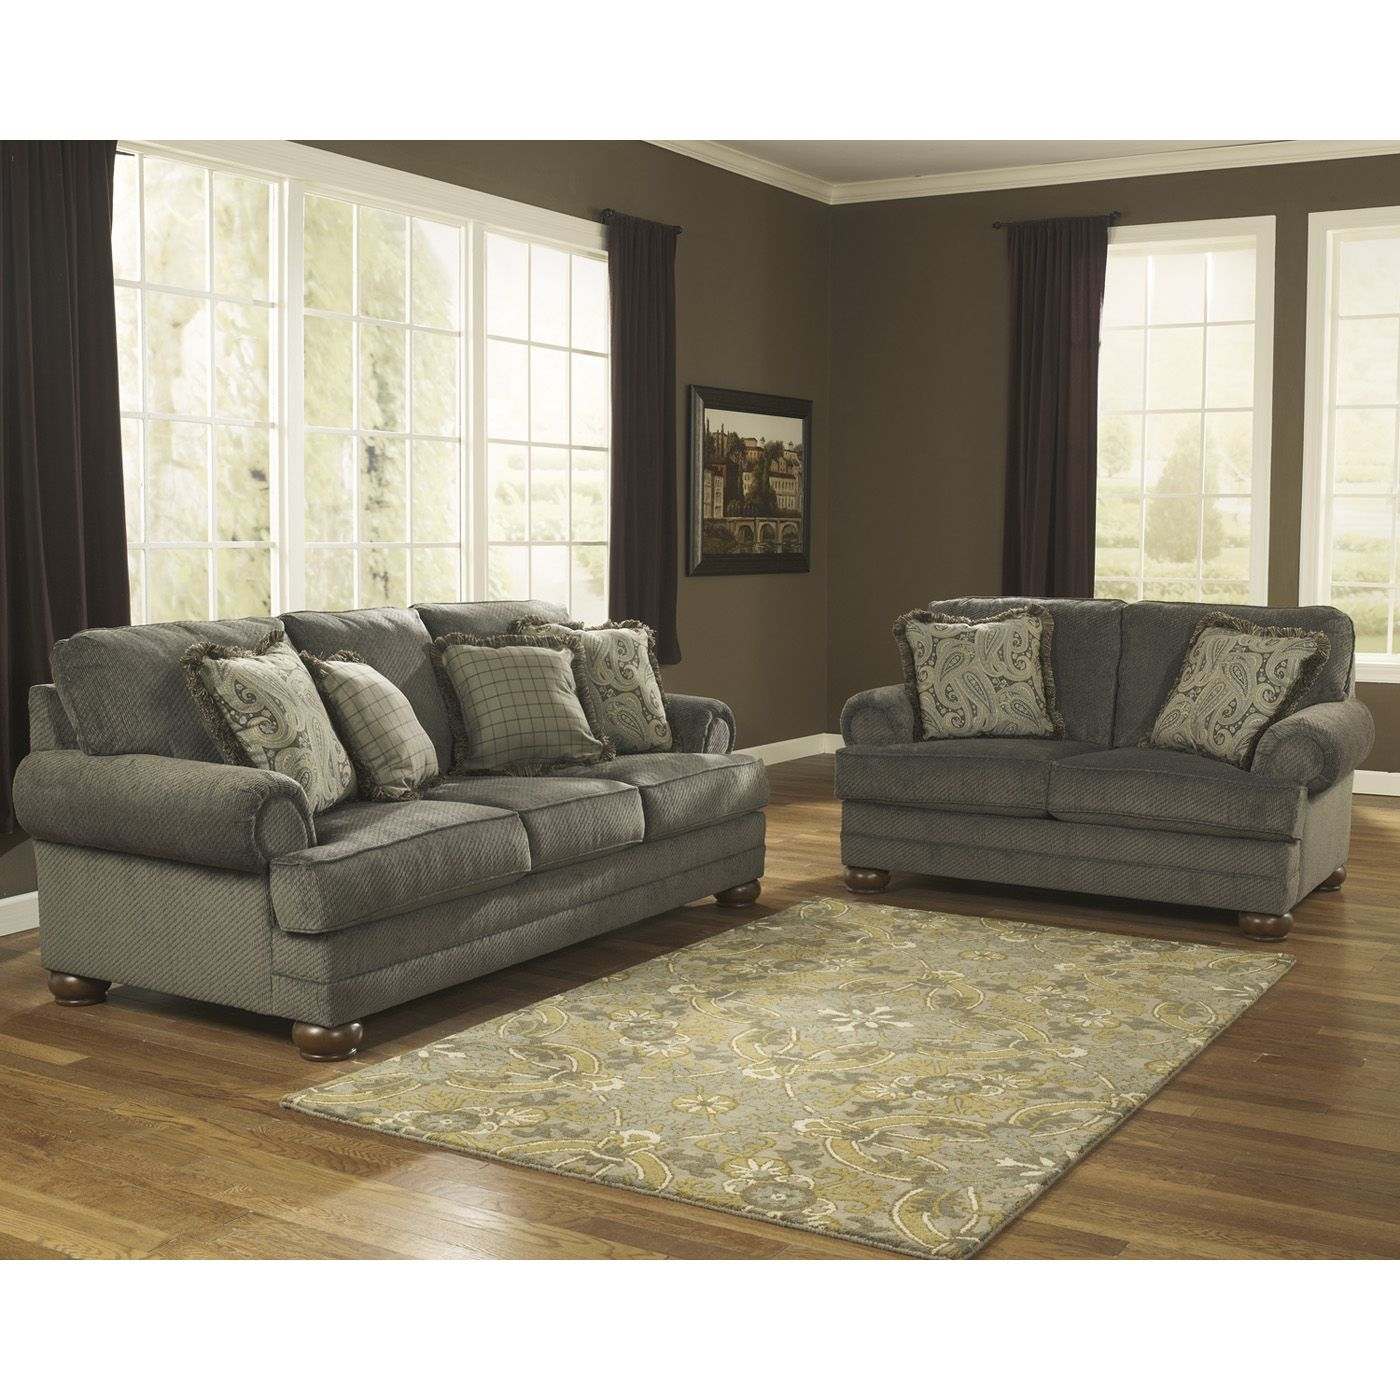 Signature Design by Ashley 7400538 Parcal Estates Sofa | Big Move ...